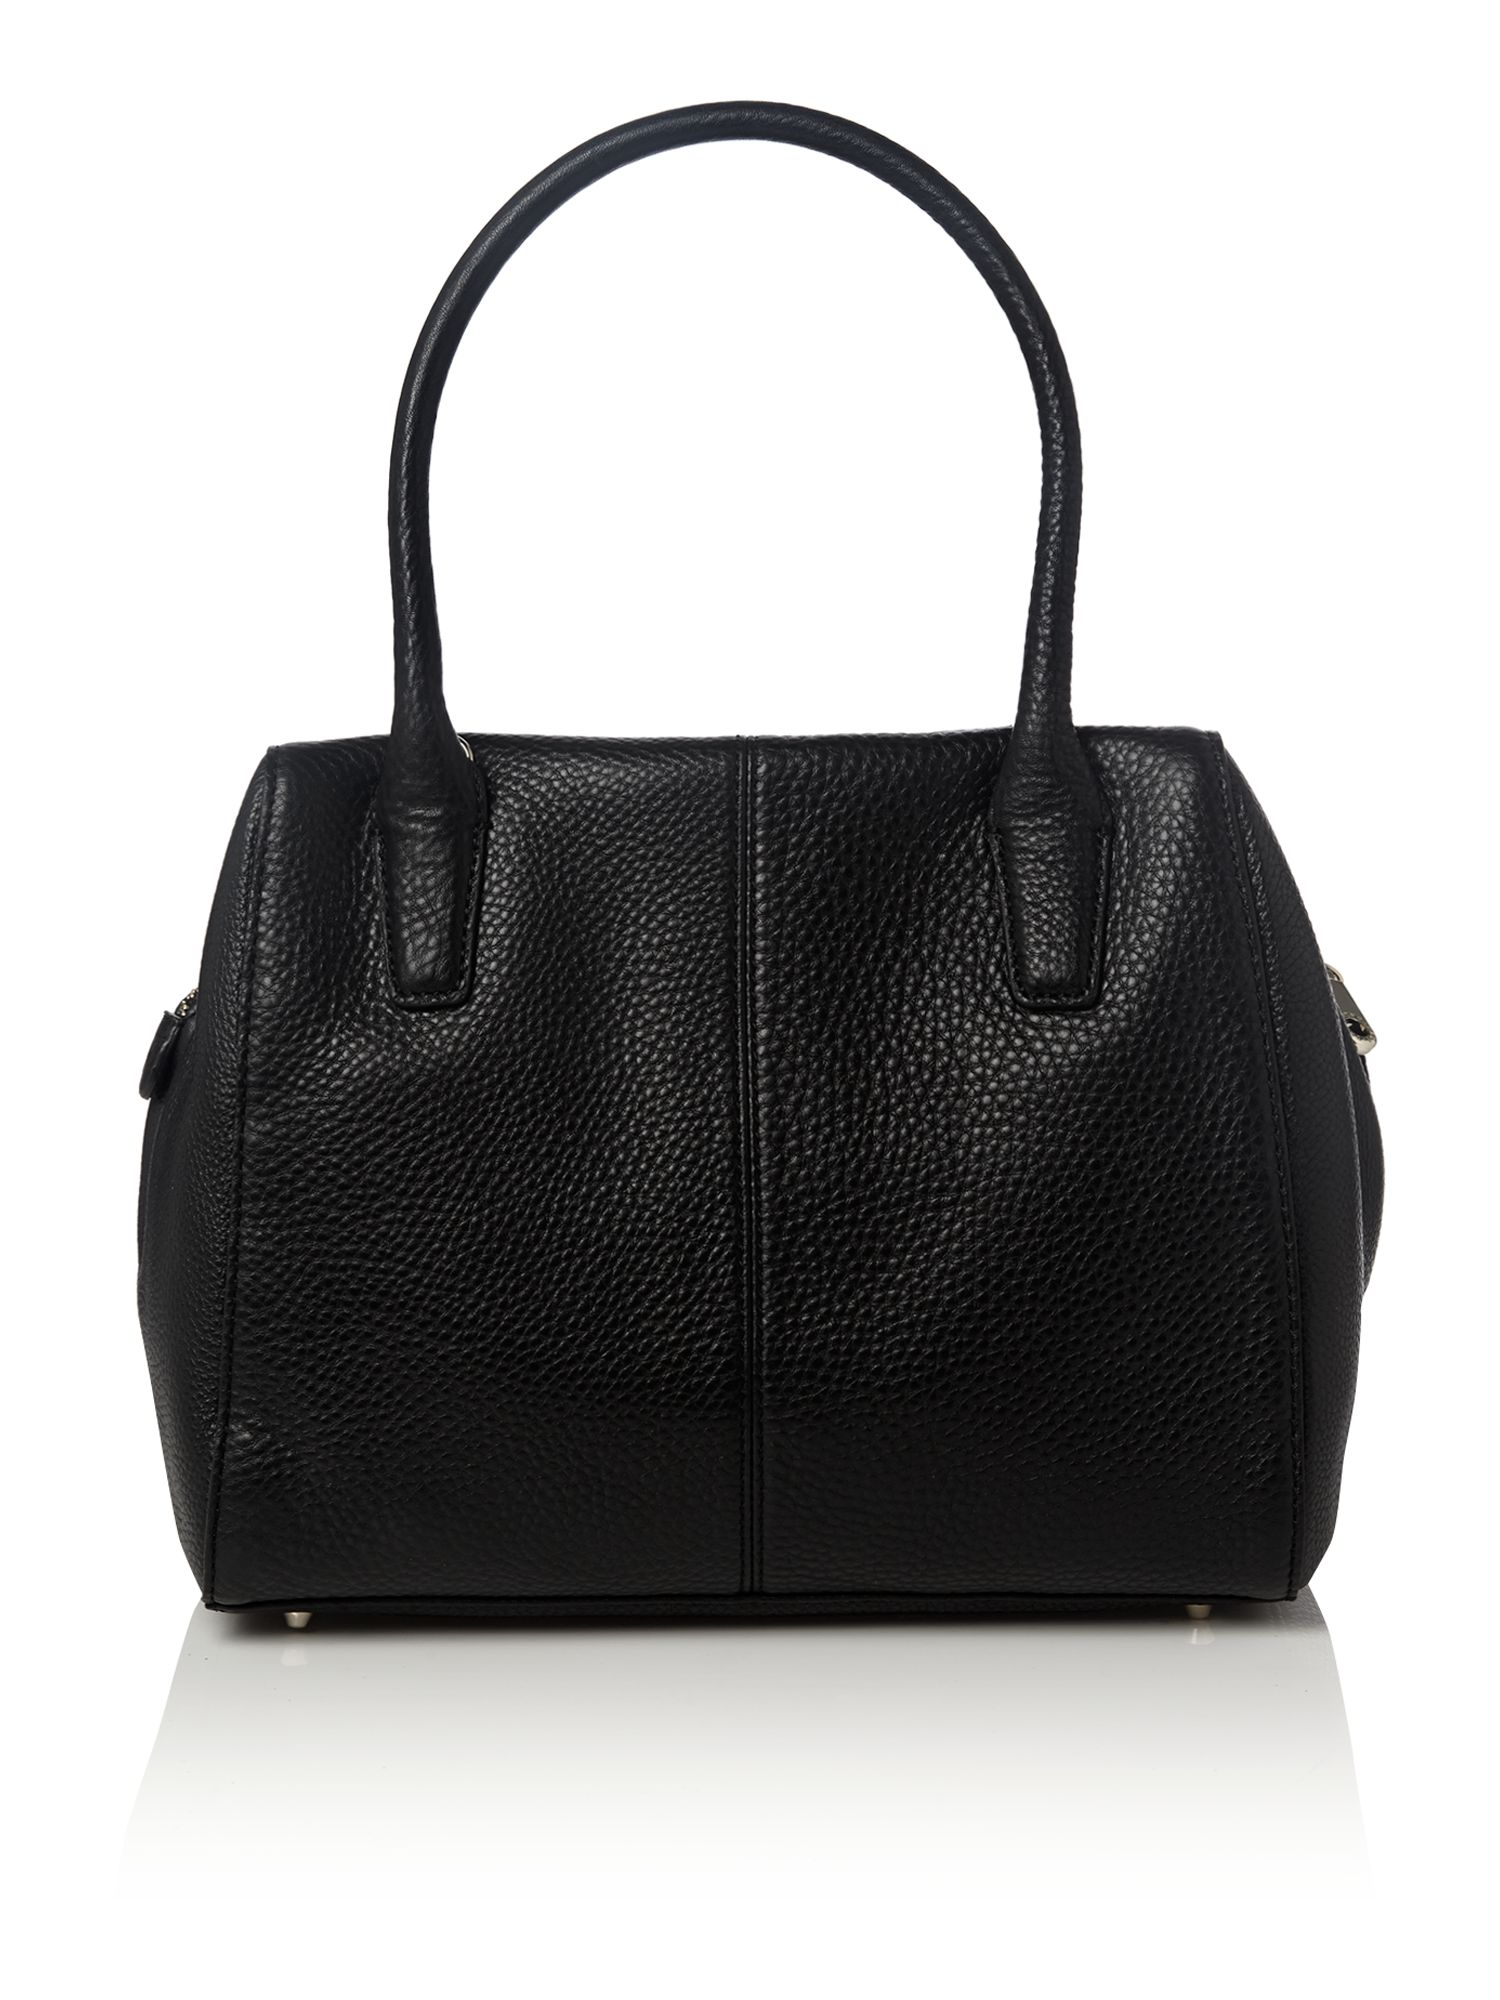 Tribeca black top zip satchel bag